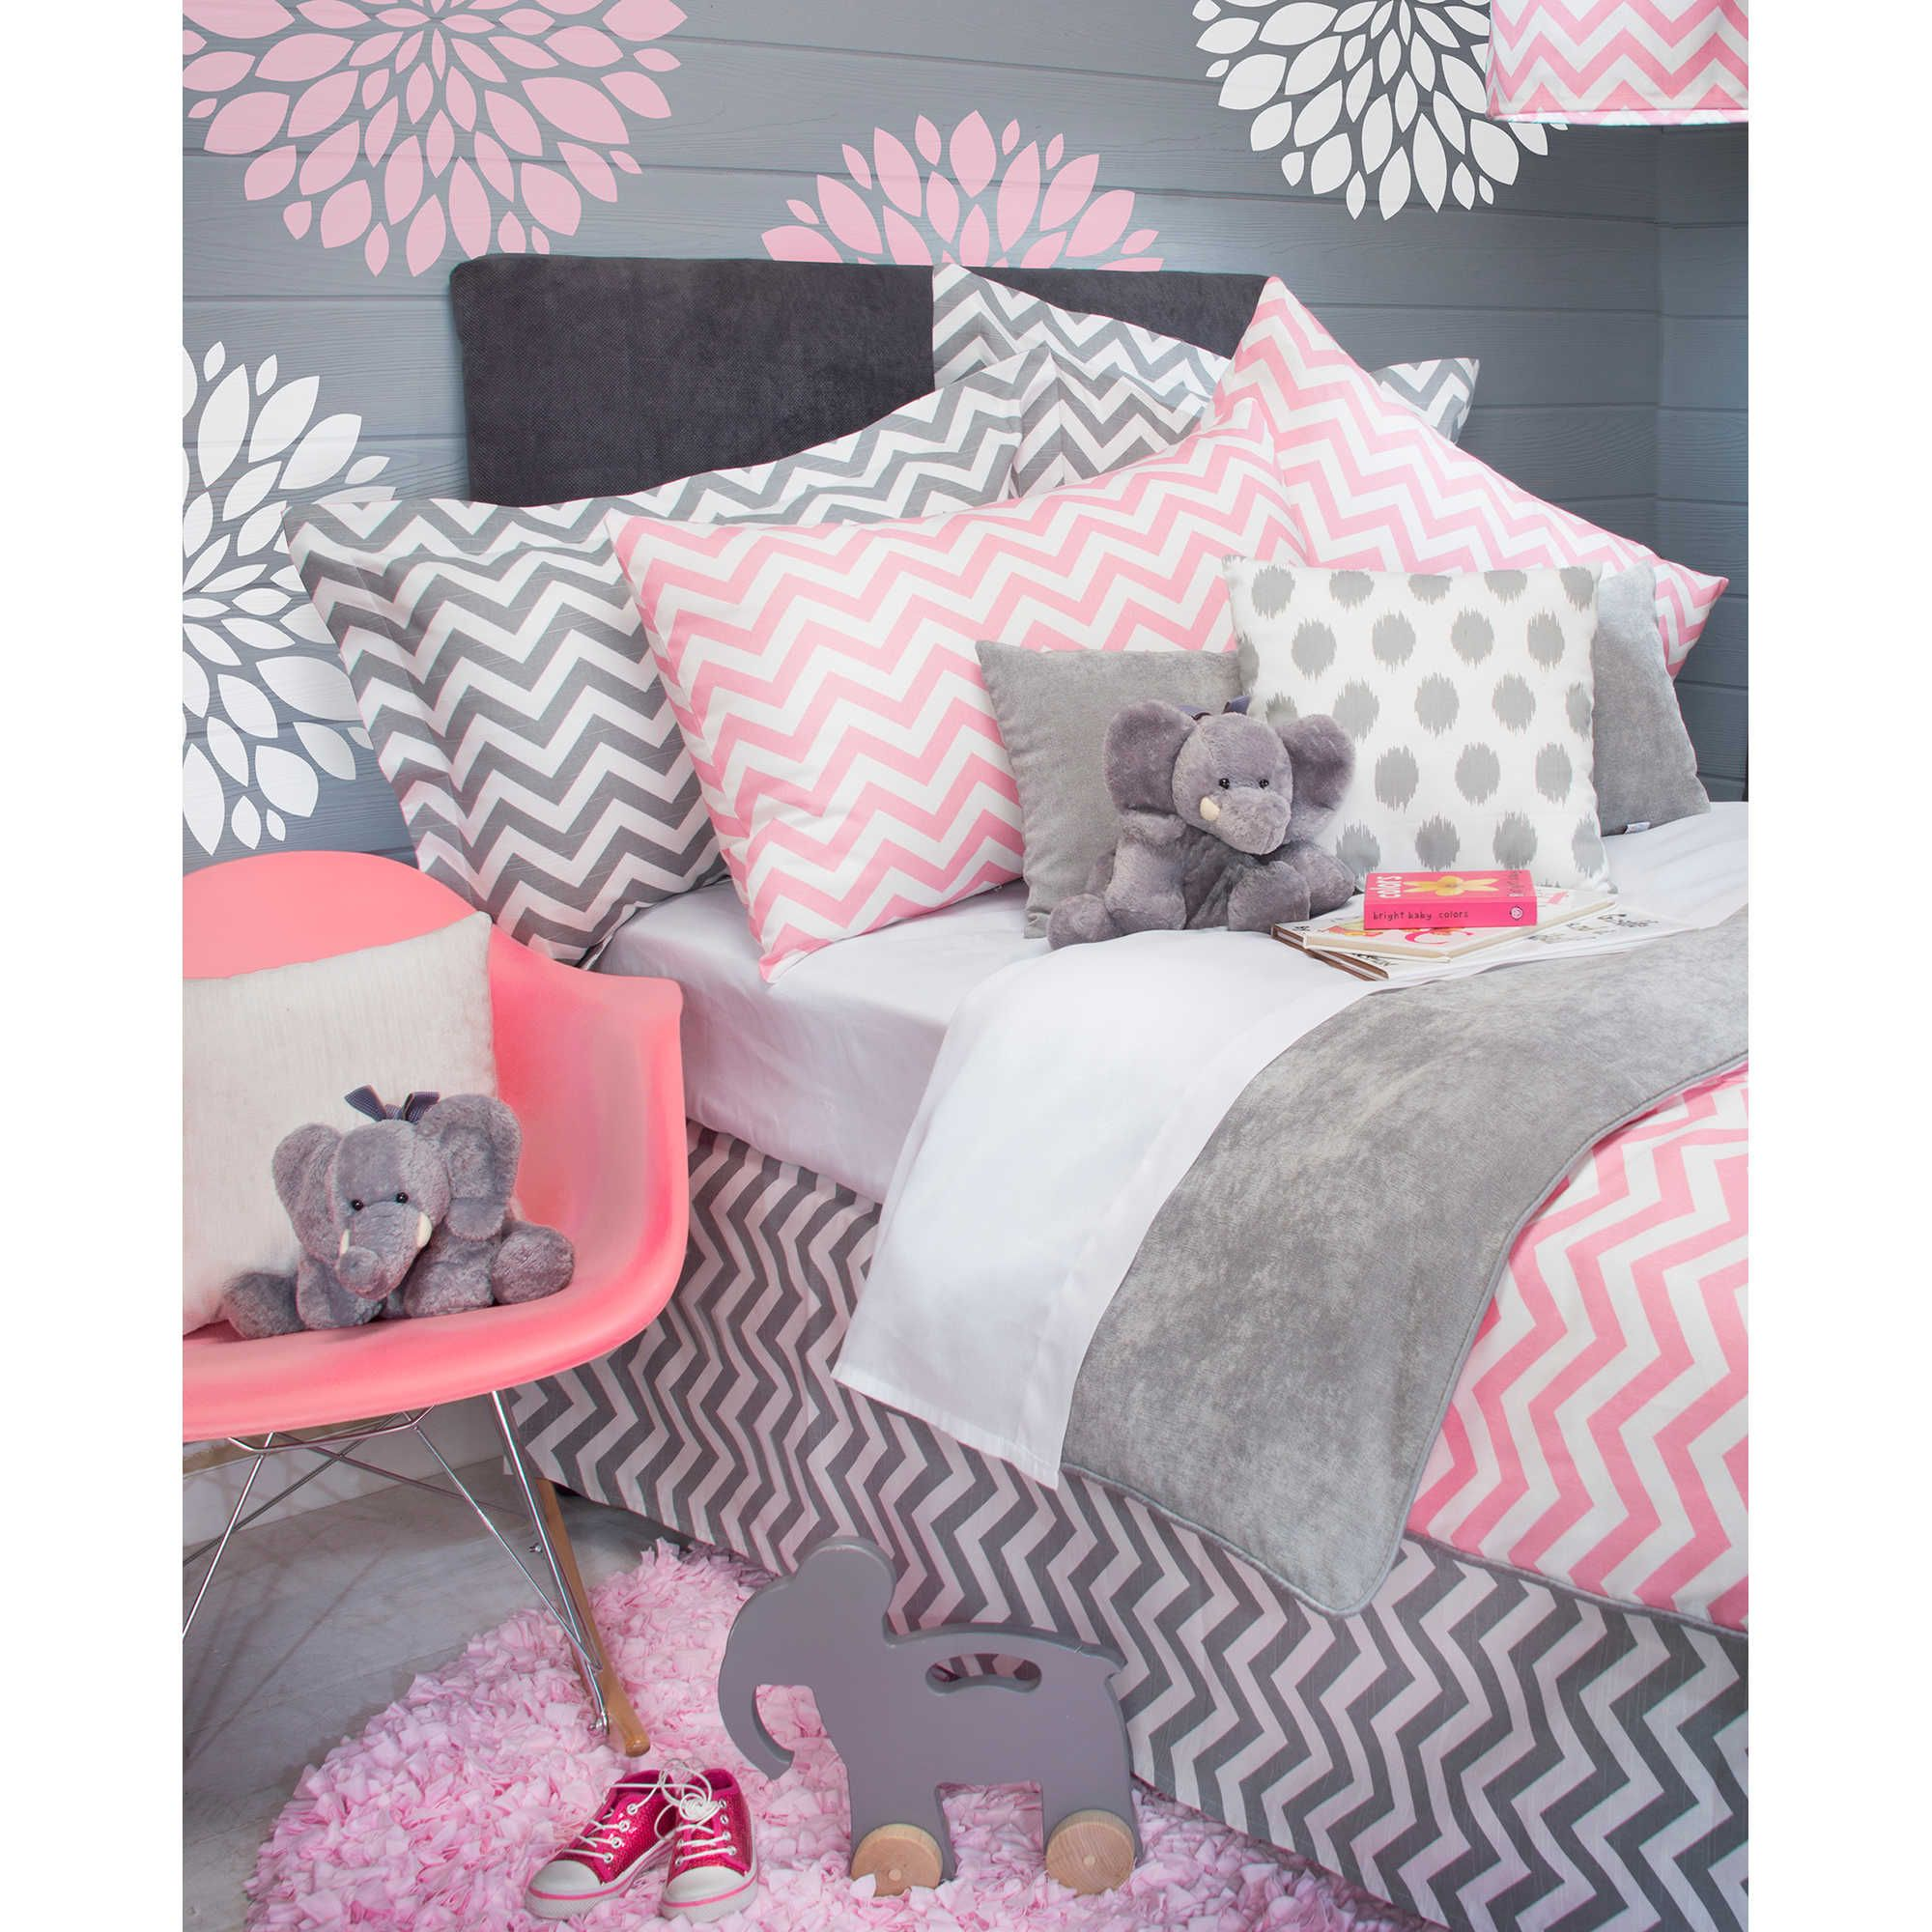 Glenna Jean Swizzle Bedding Collection in Pink Pink